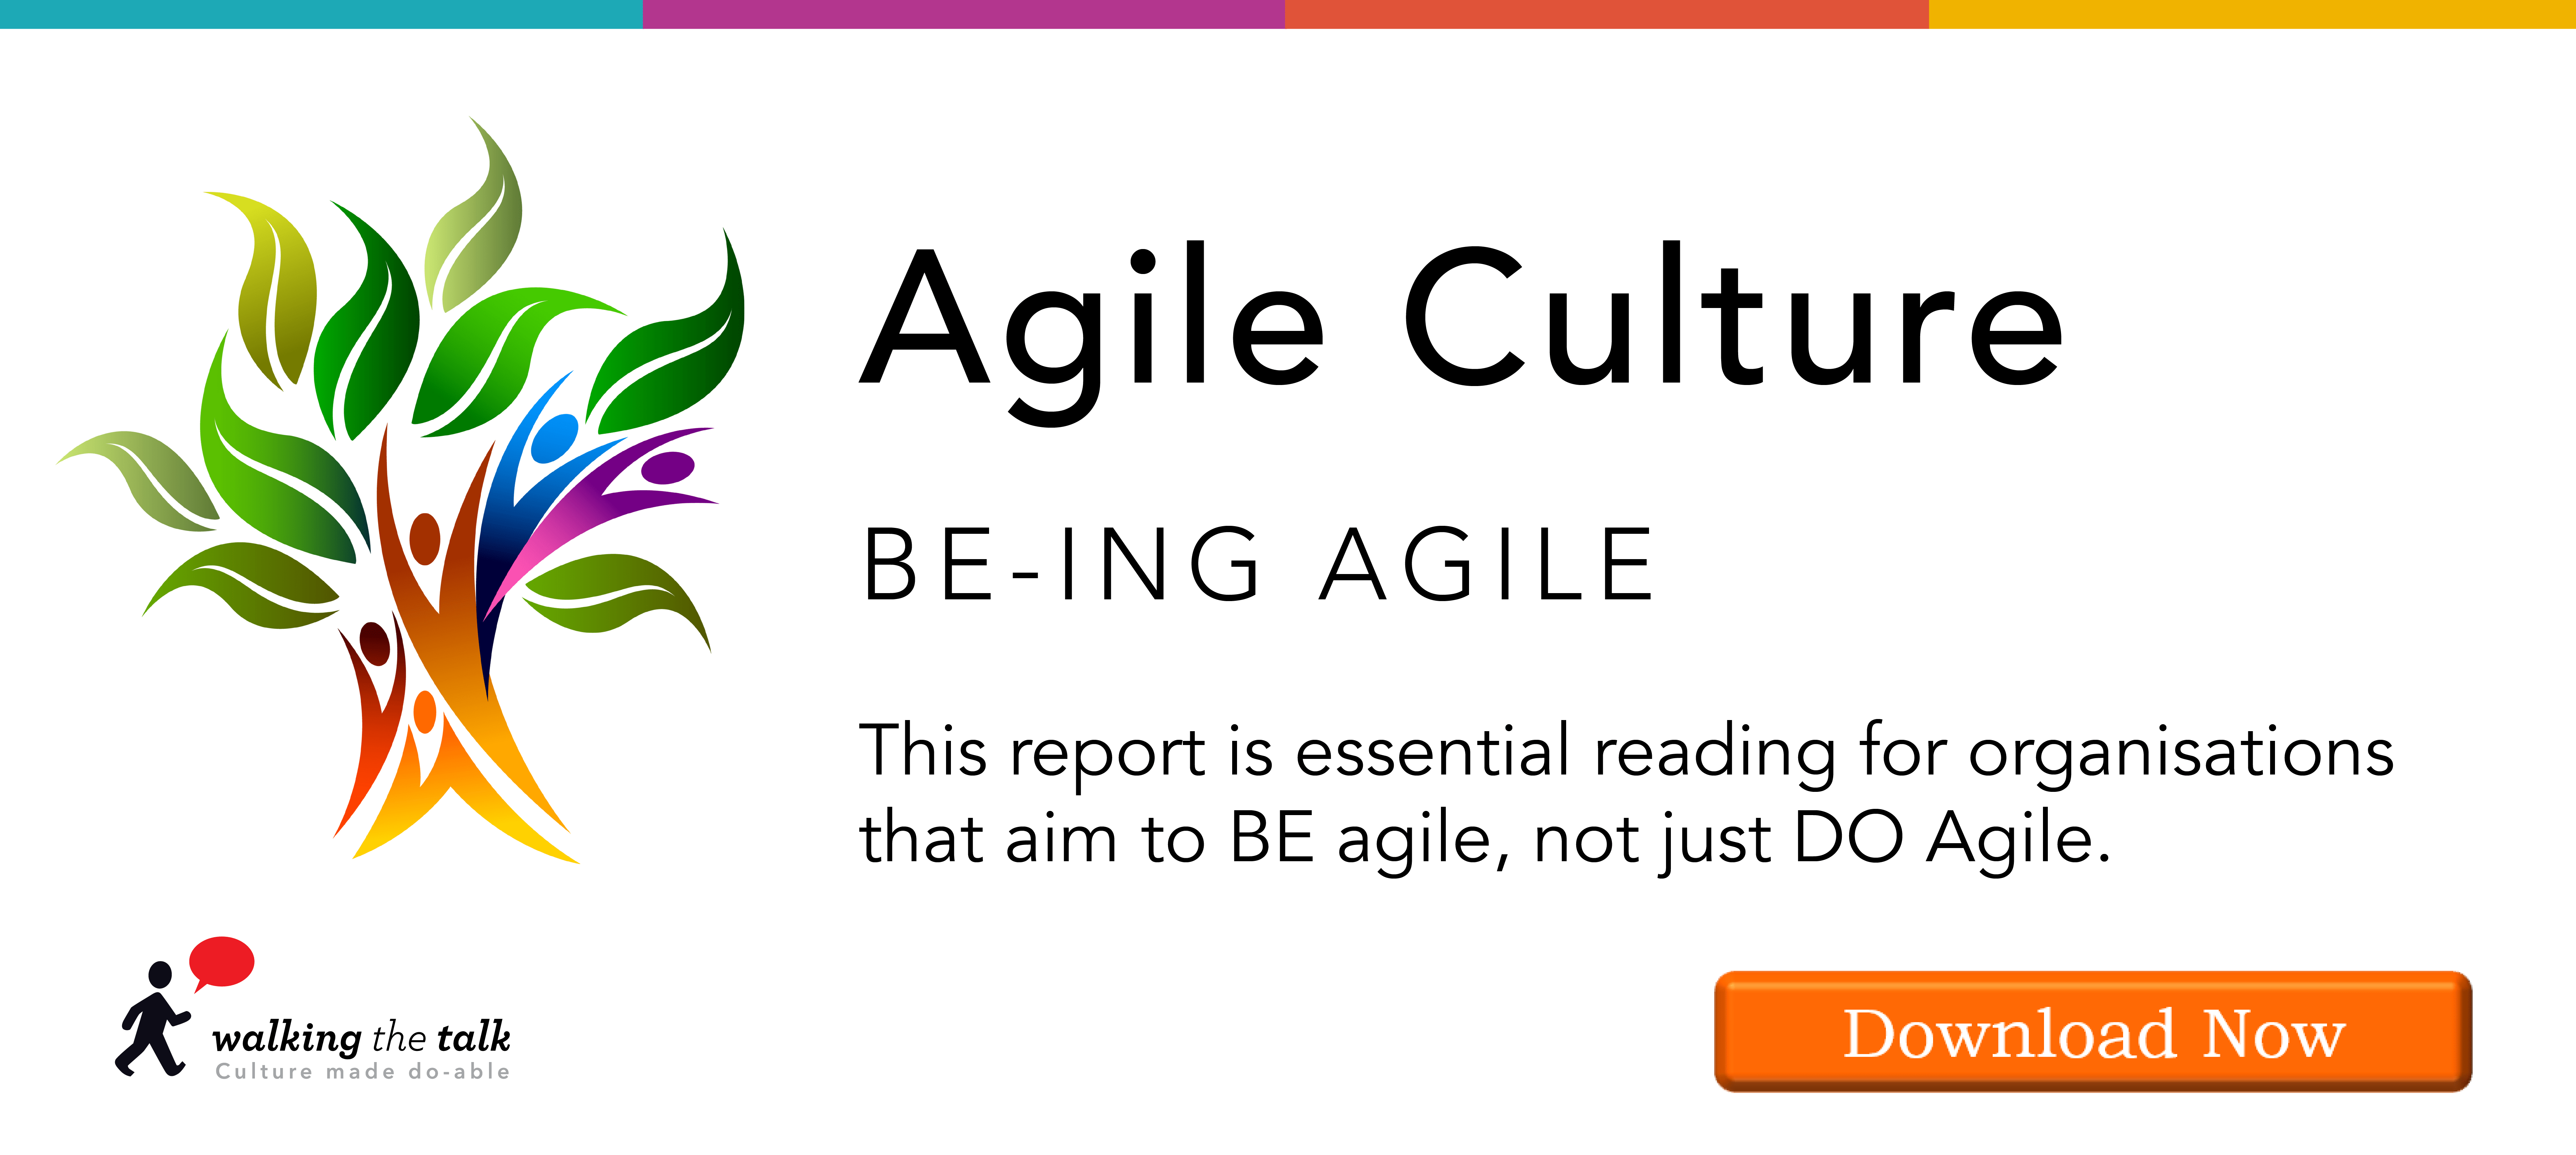 Download Walking the Talk's report on Agile Culture in 2019